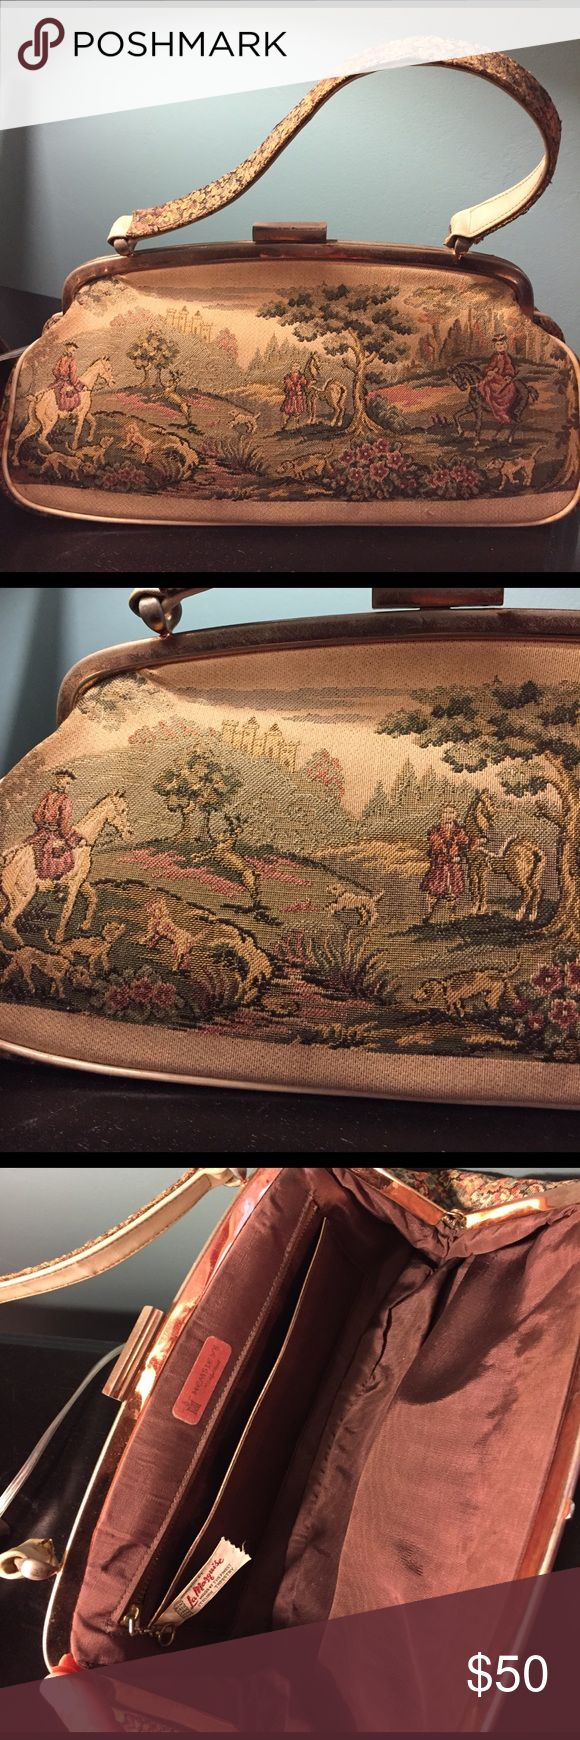 """💝 Vintage Tapestry Handbag This vintage tapestry bag is very charming. The scene in the bag is of horsemen with dogs, in the background is a castle. The bag has a snap closure which works perfectly with some wear on handle. Inside is a brown material in great condition, with a pocket as well as an additional zip pocket. Tag inside reads """"handlers by La Marquis made of the finest Italian tapestry.""""  Bottom is all 🌺 flowers. Measures 12 x 6 x 3.5 inches. Hemsley's Bags Mini Bags"""